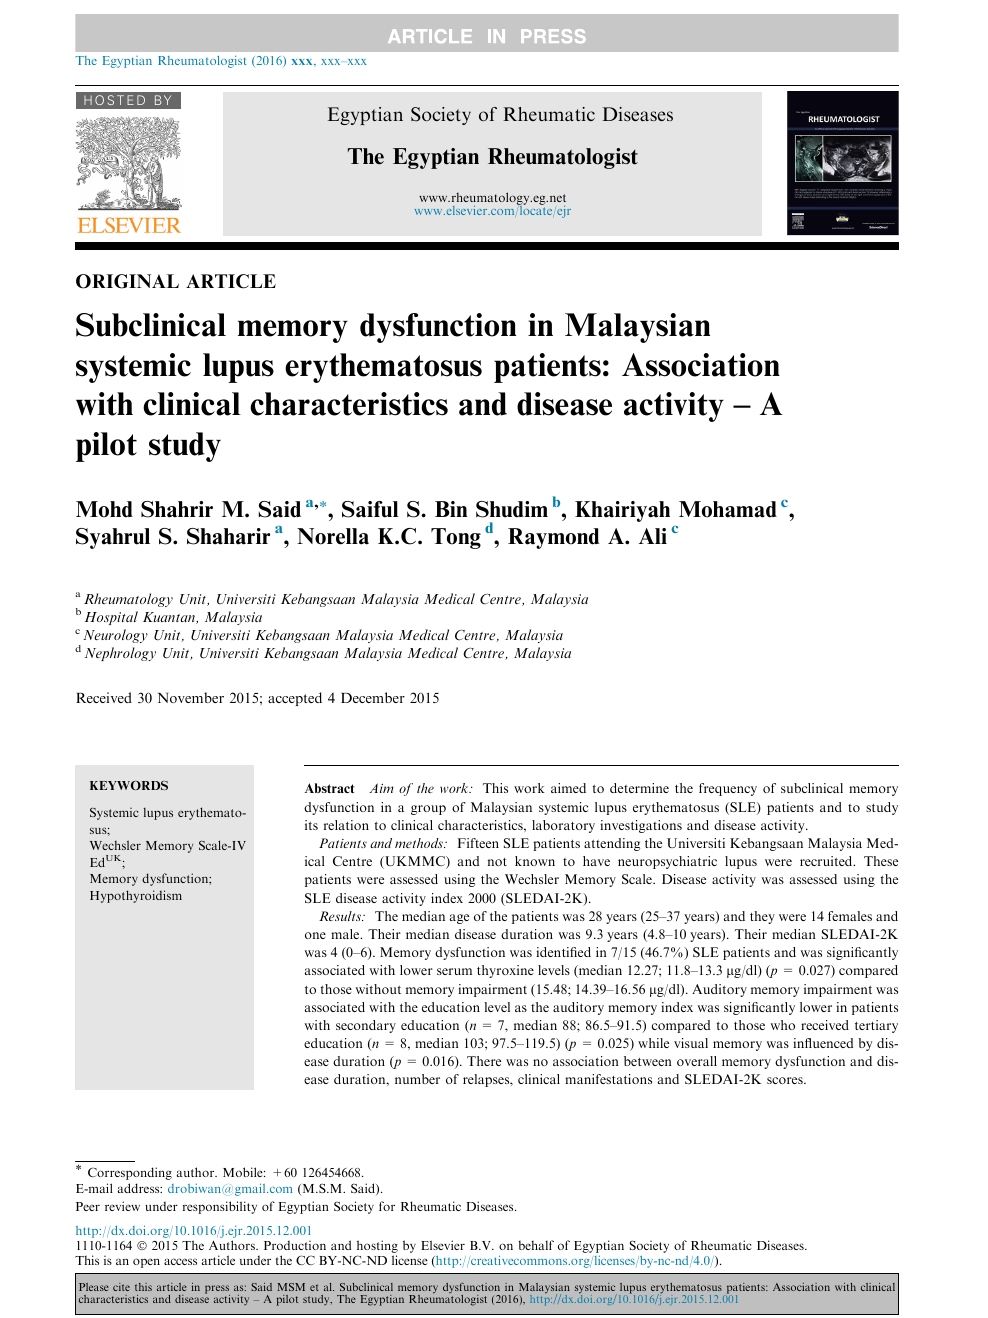 Subclinical memory dysfunction in Malaysian systemic lupus